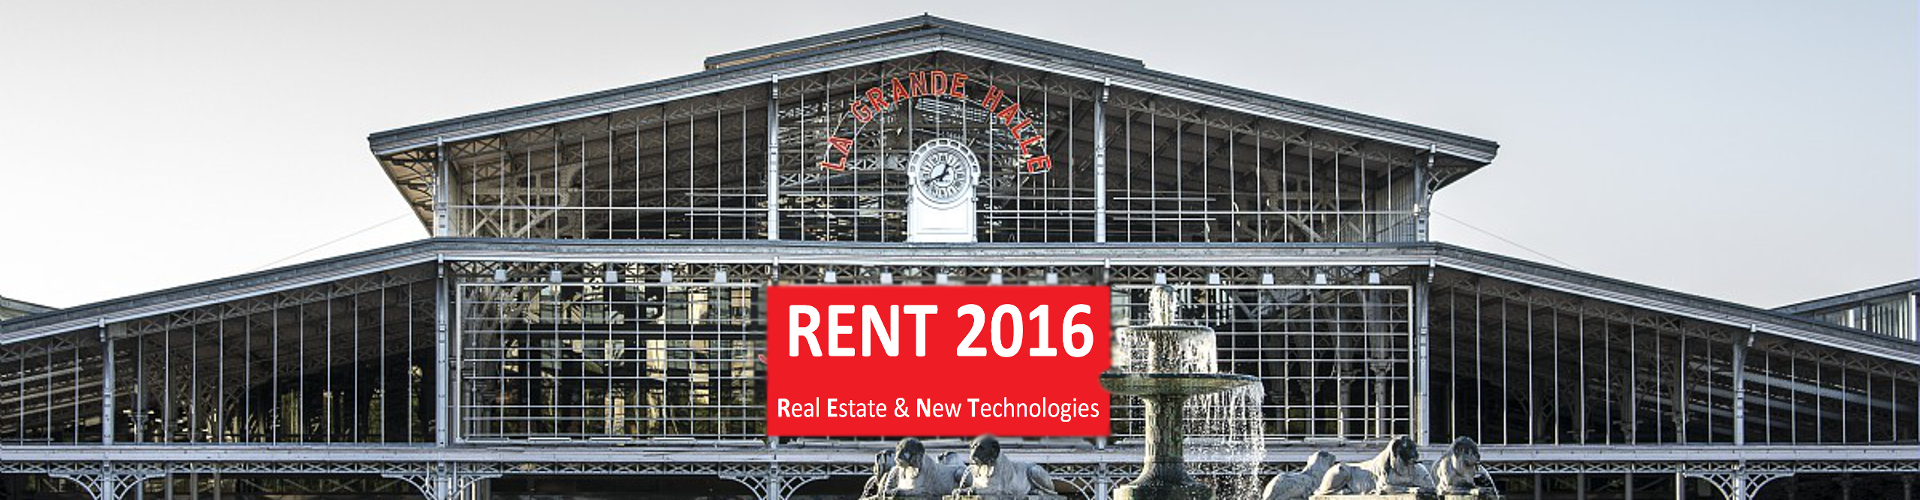 Salon RENT 2016